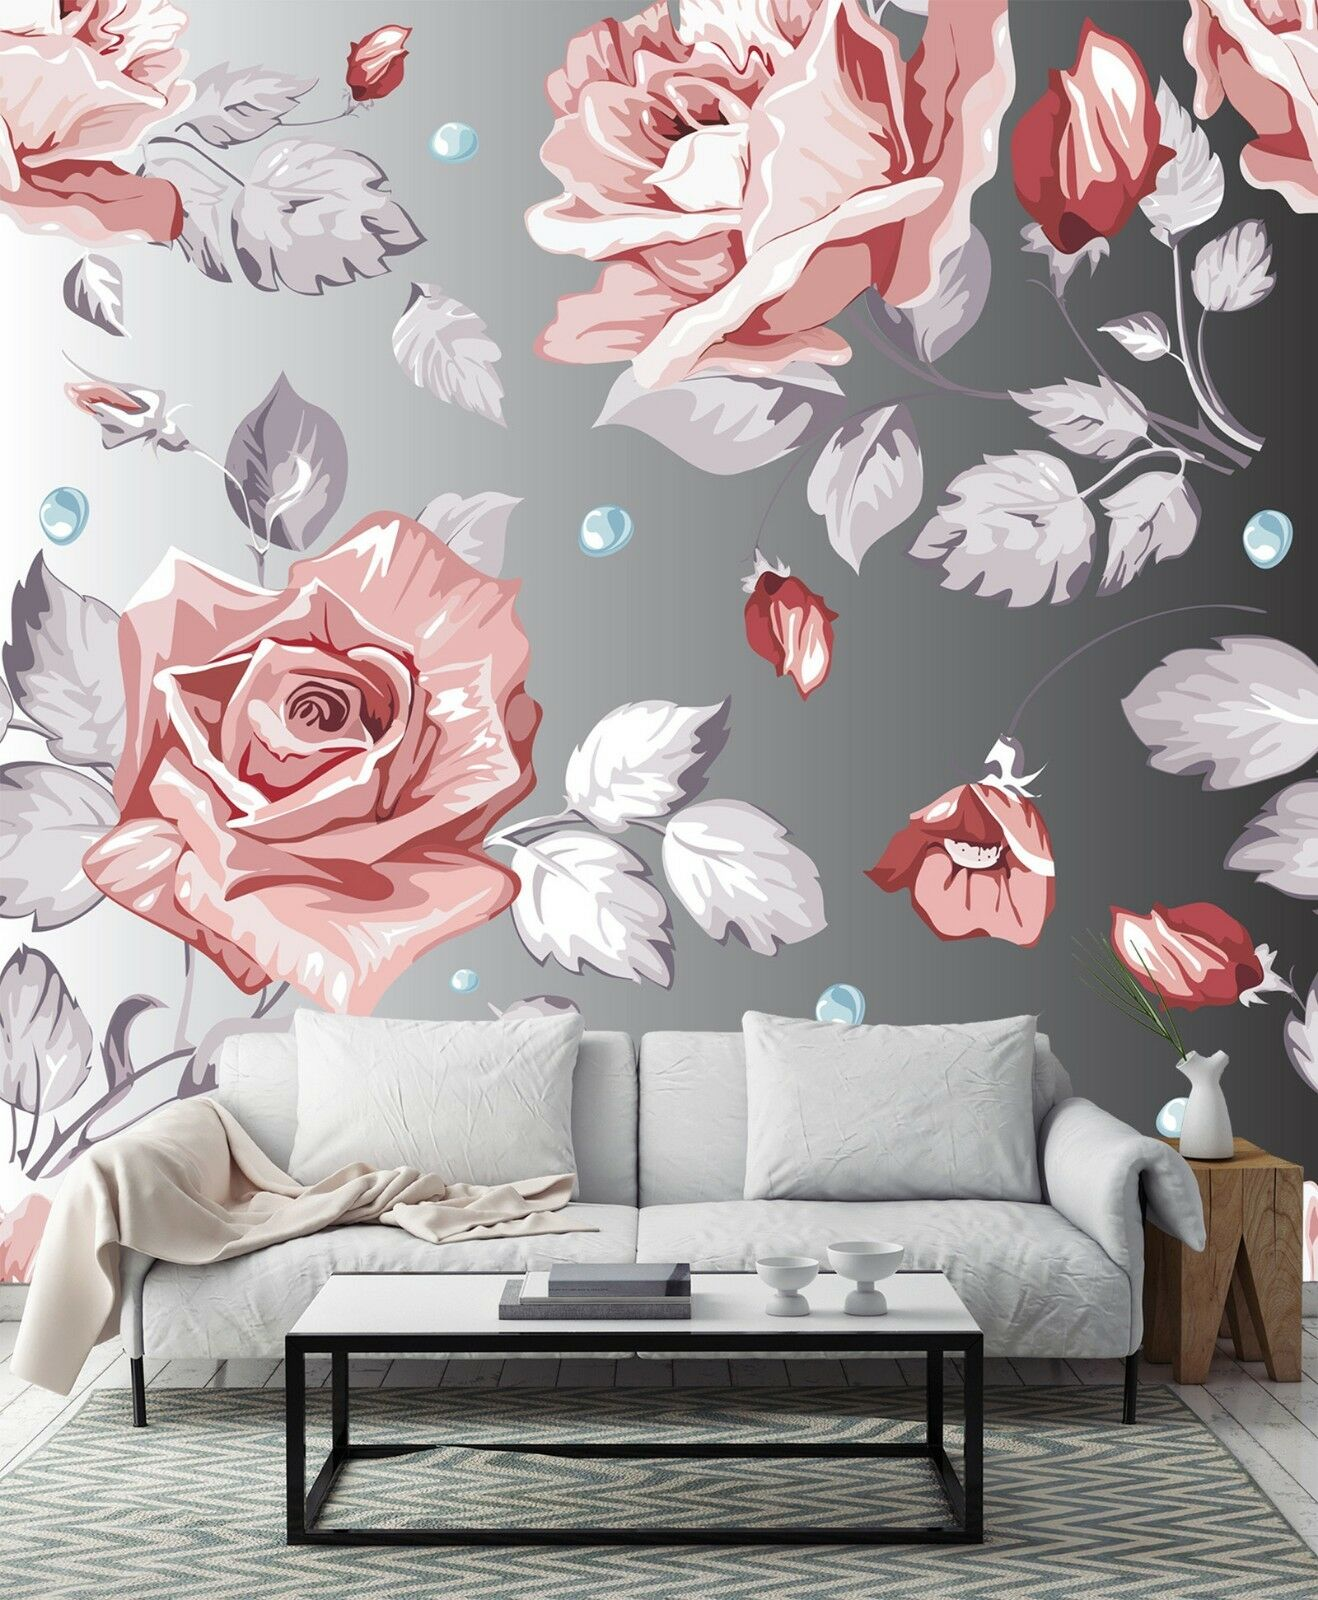 3D Cartoon pinks Wall Paper Print Decal Wall Deco Indoor wall Mural